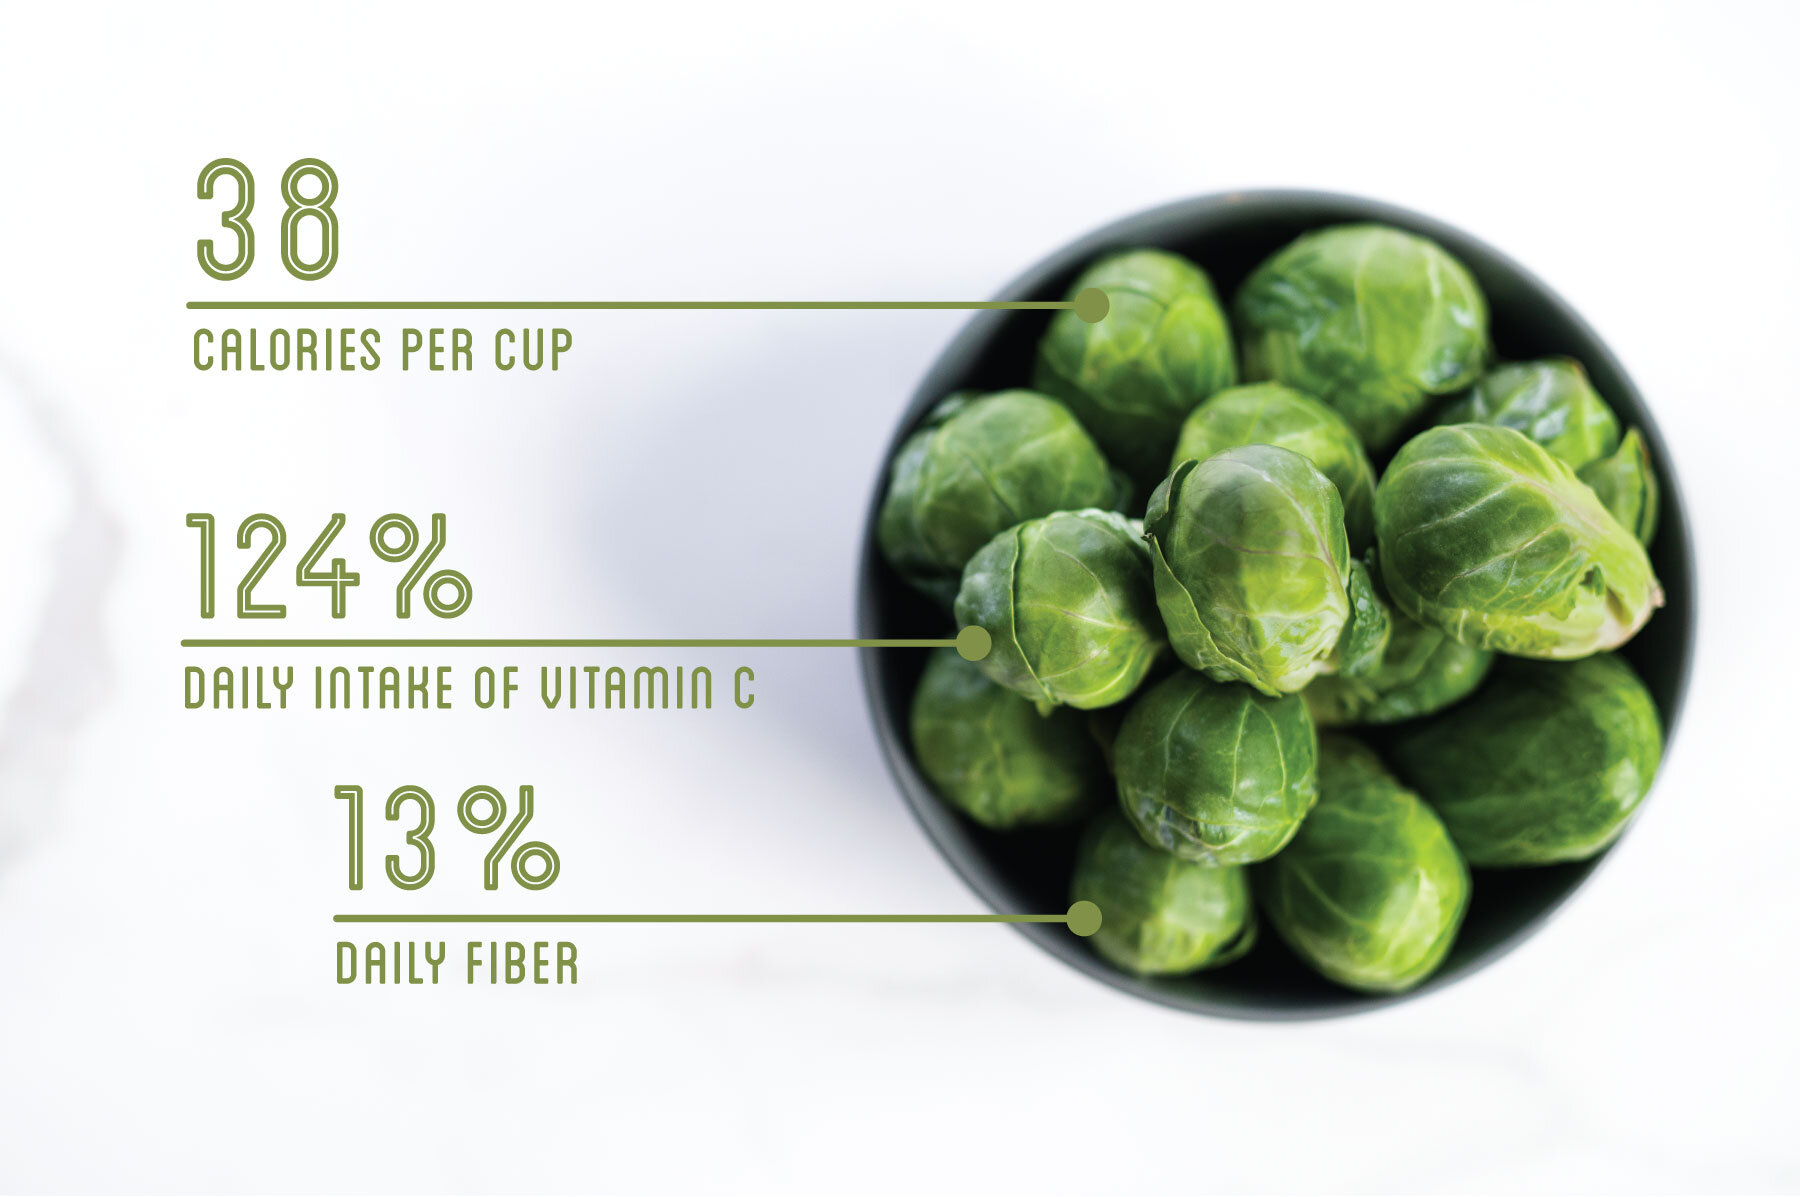 alpine-fresh-brussels-sprouts-nutrition-graphic.jpg